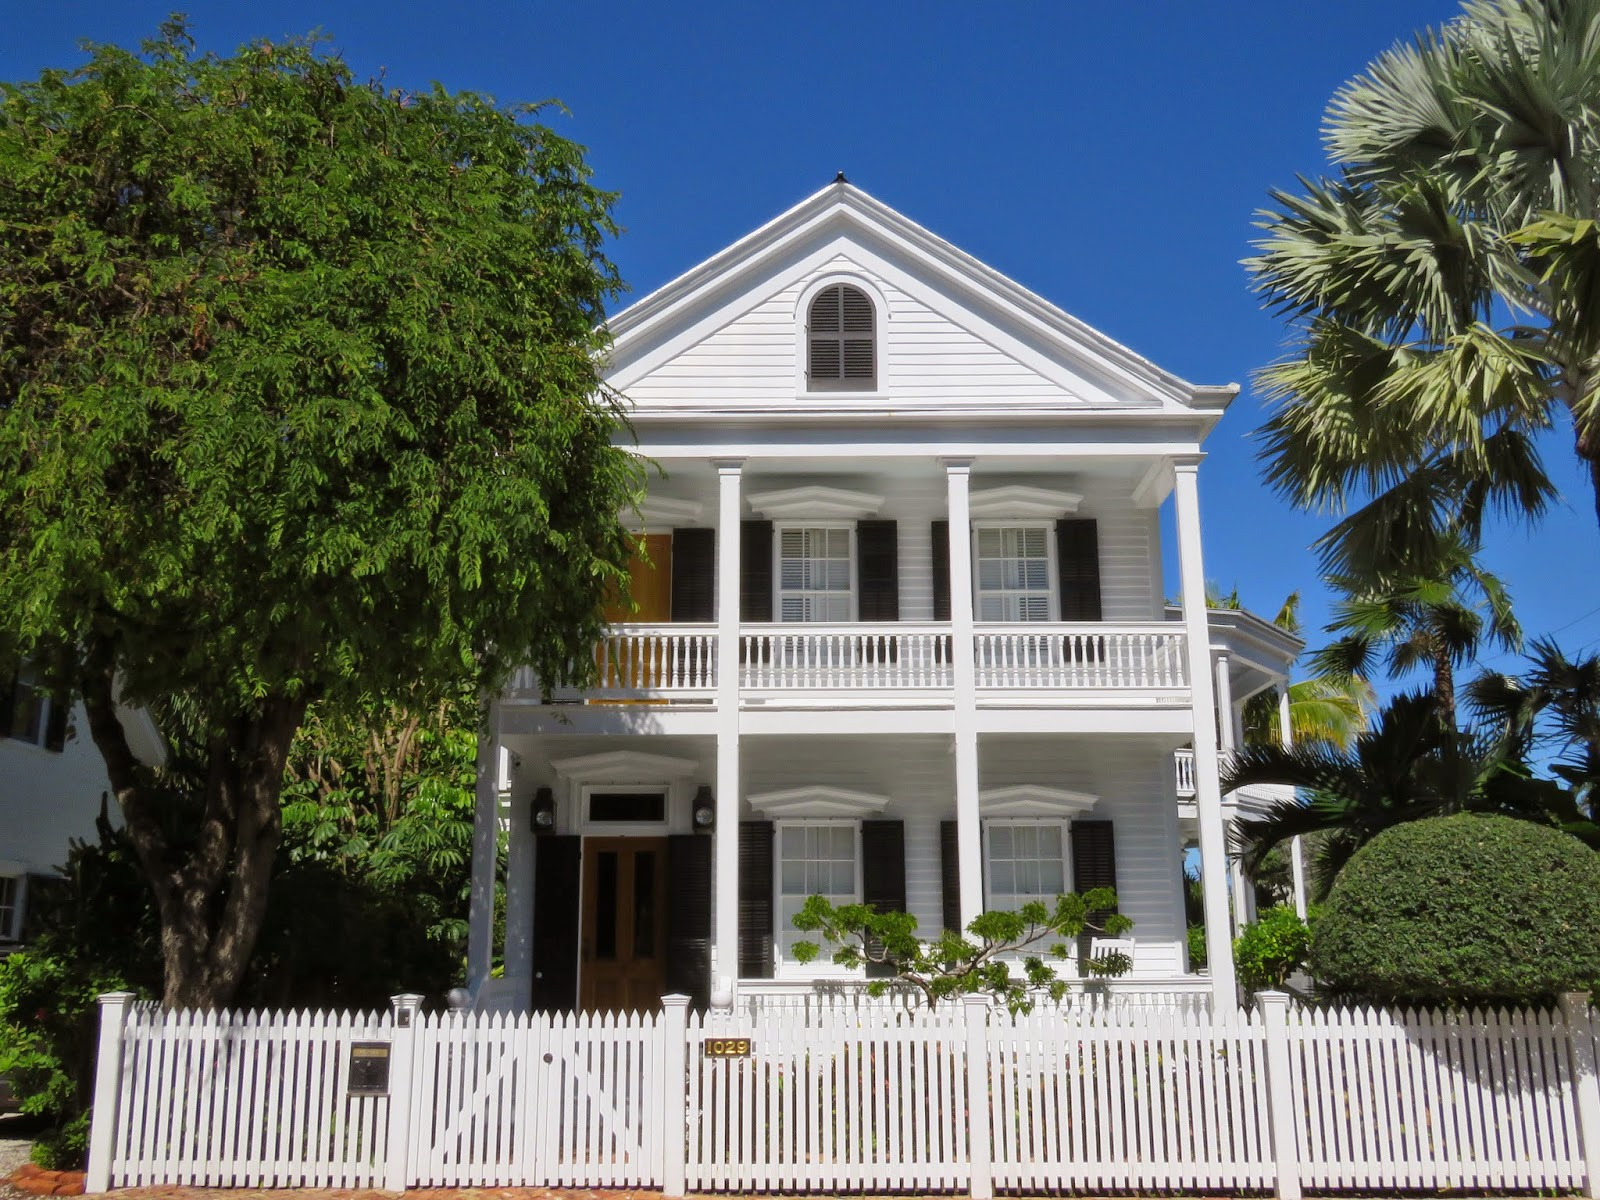 Key West vacation and visit guide